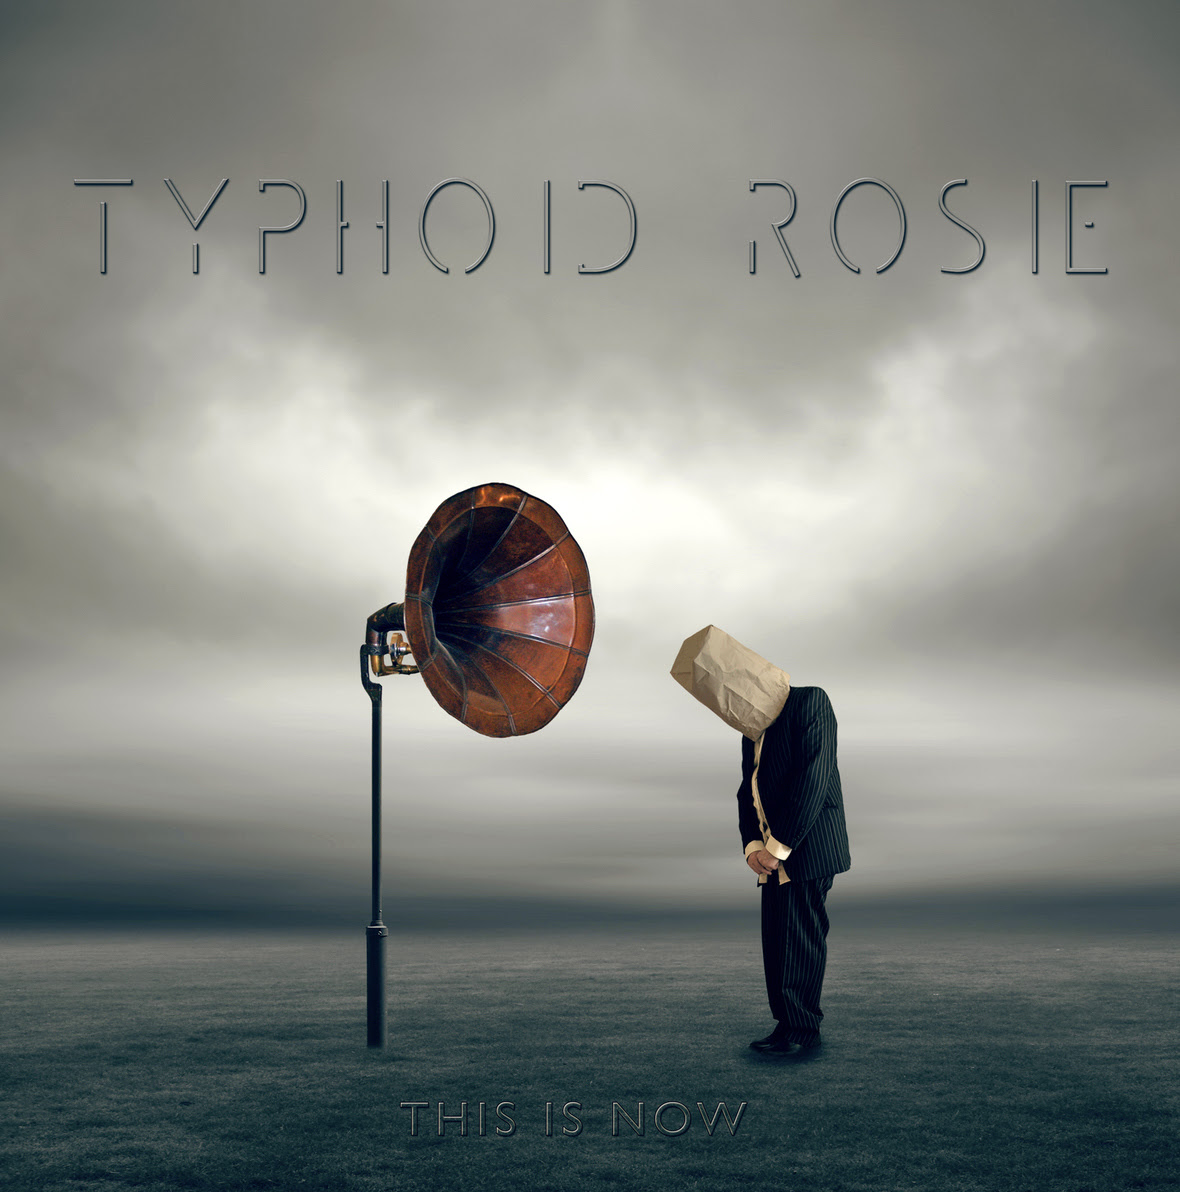 typhoid rosie this is now album art